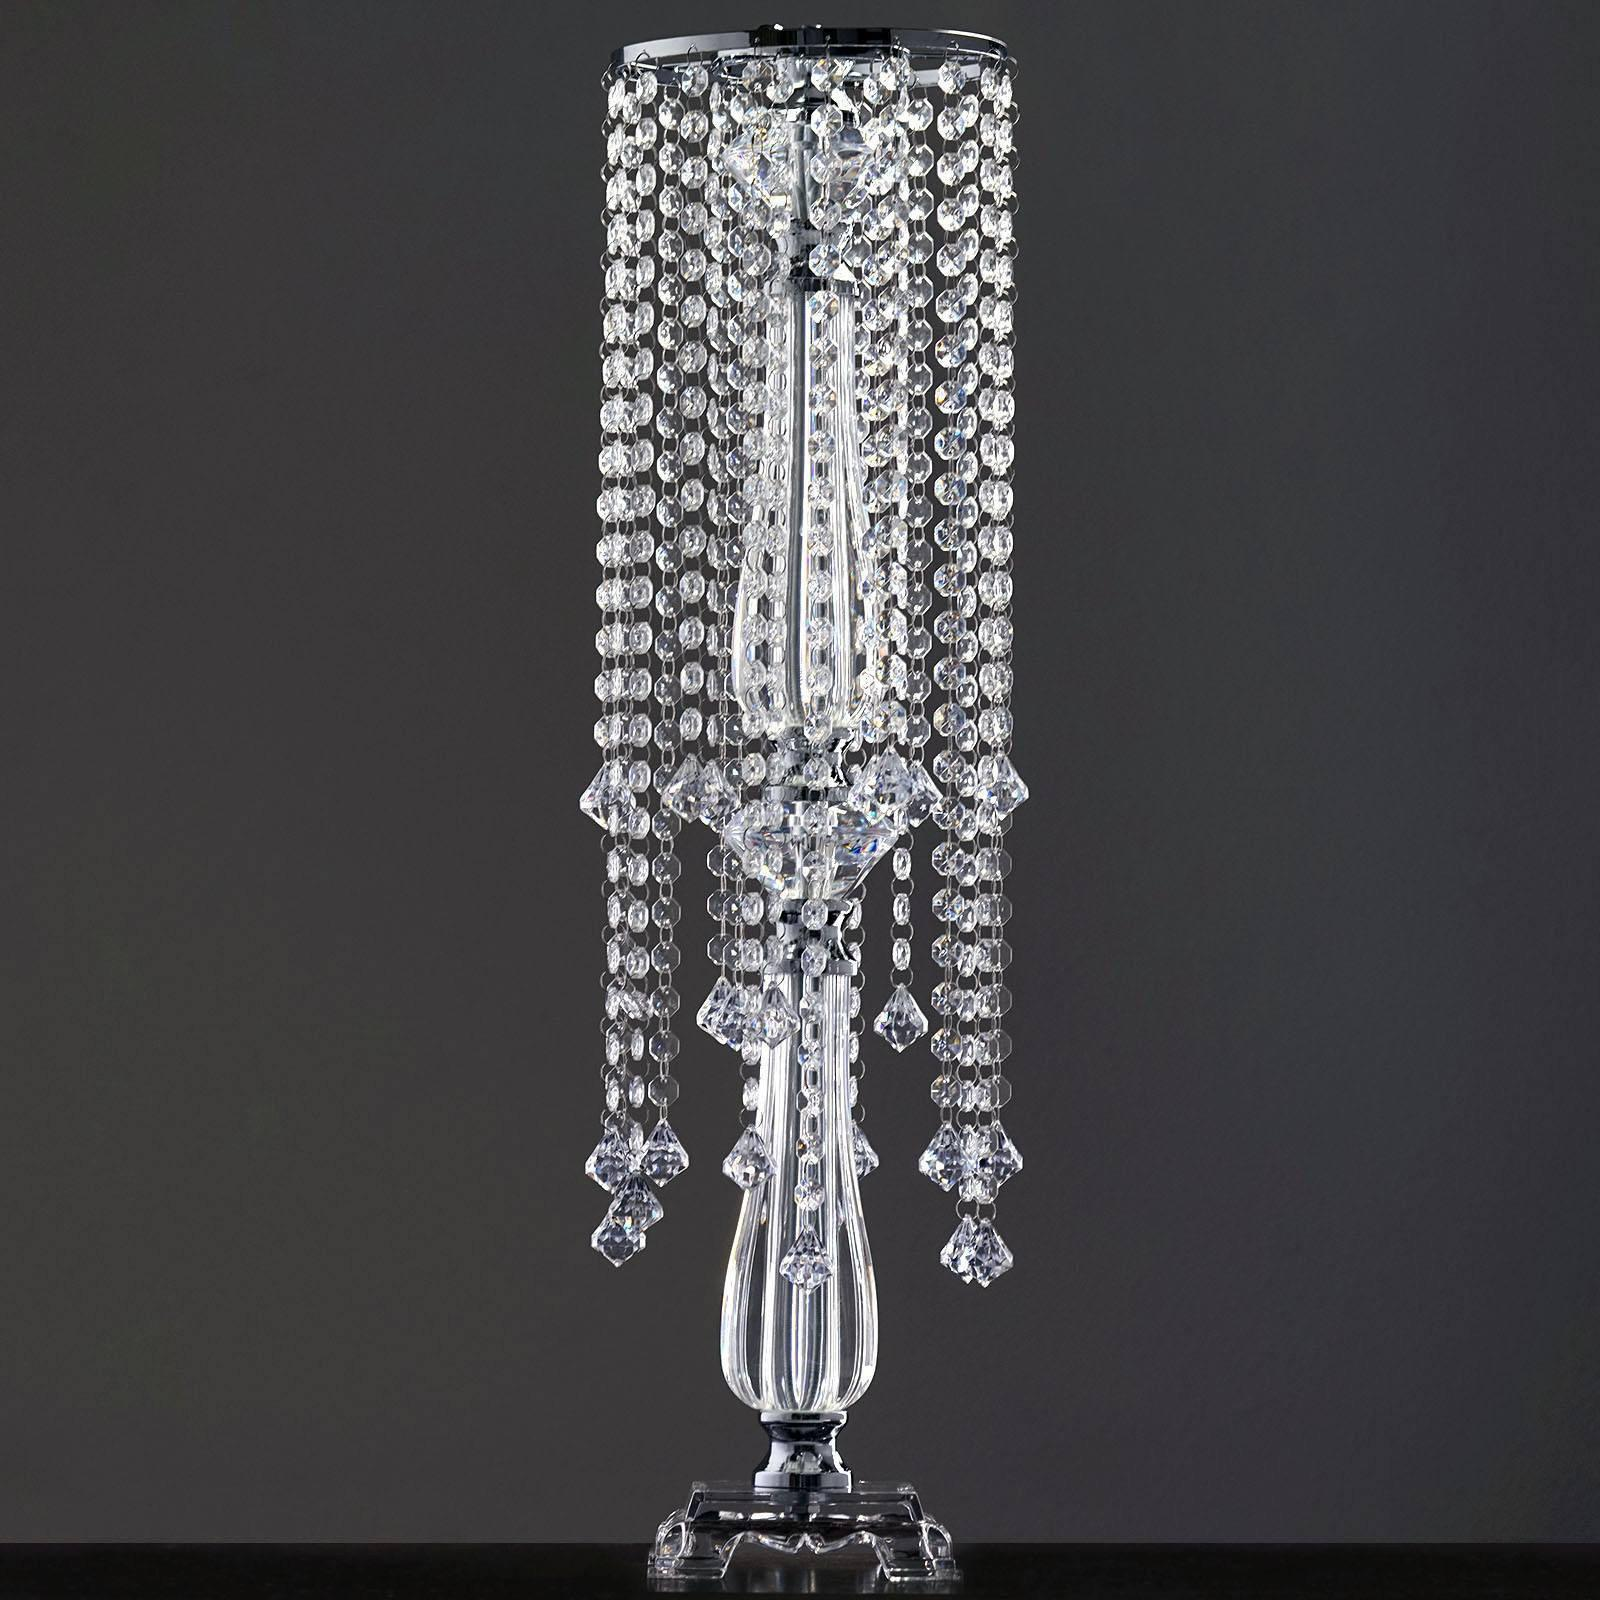 19 Hanging Crystals with Large Teardrops Diamond Crystal Chandelier ...